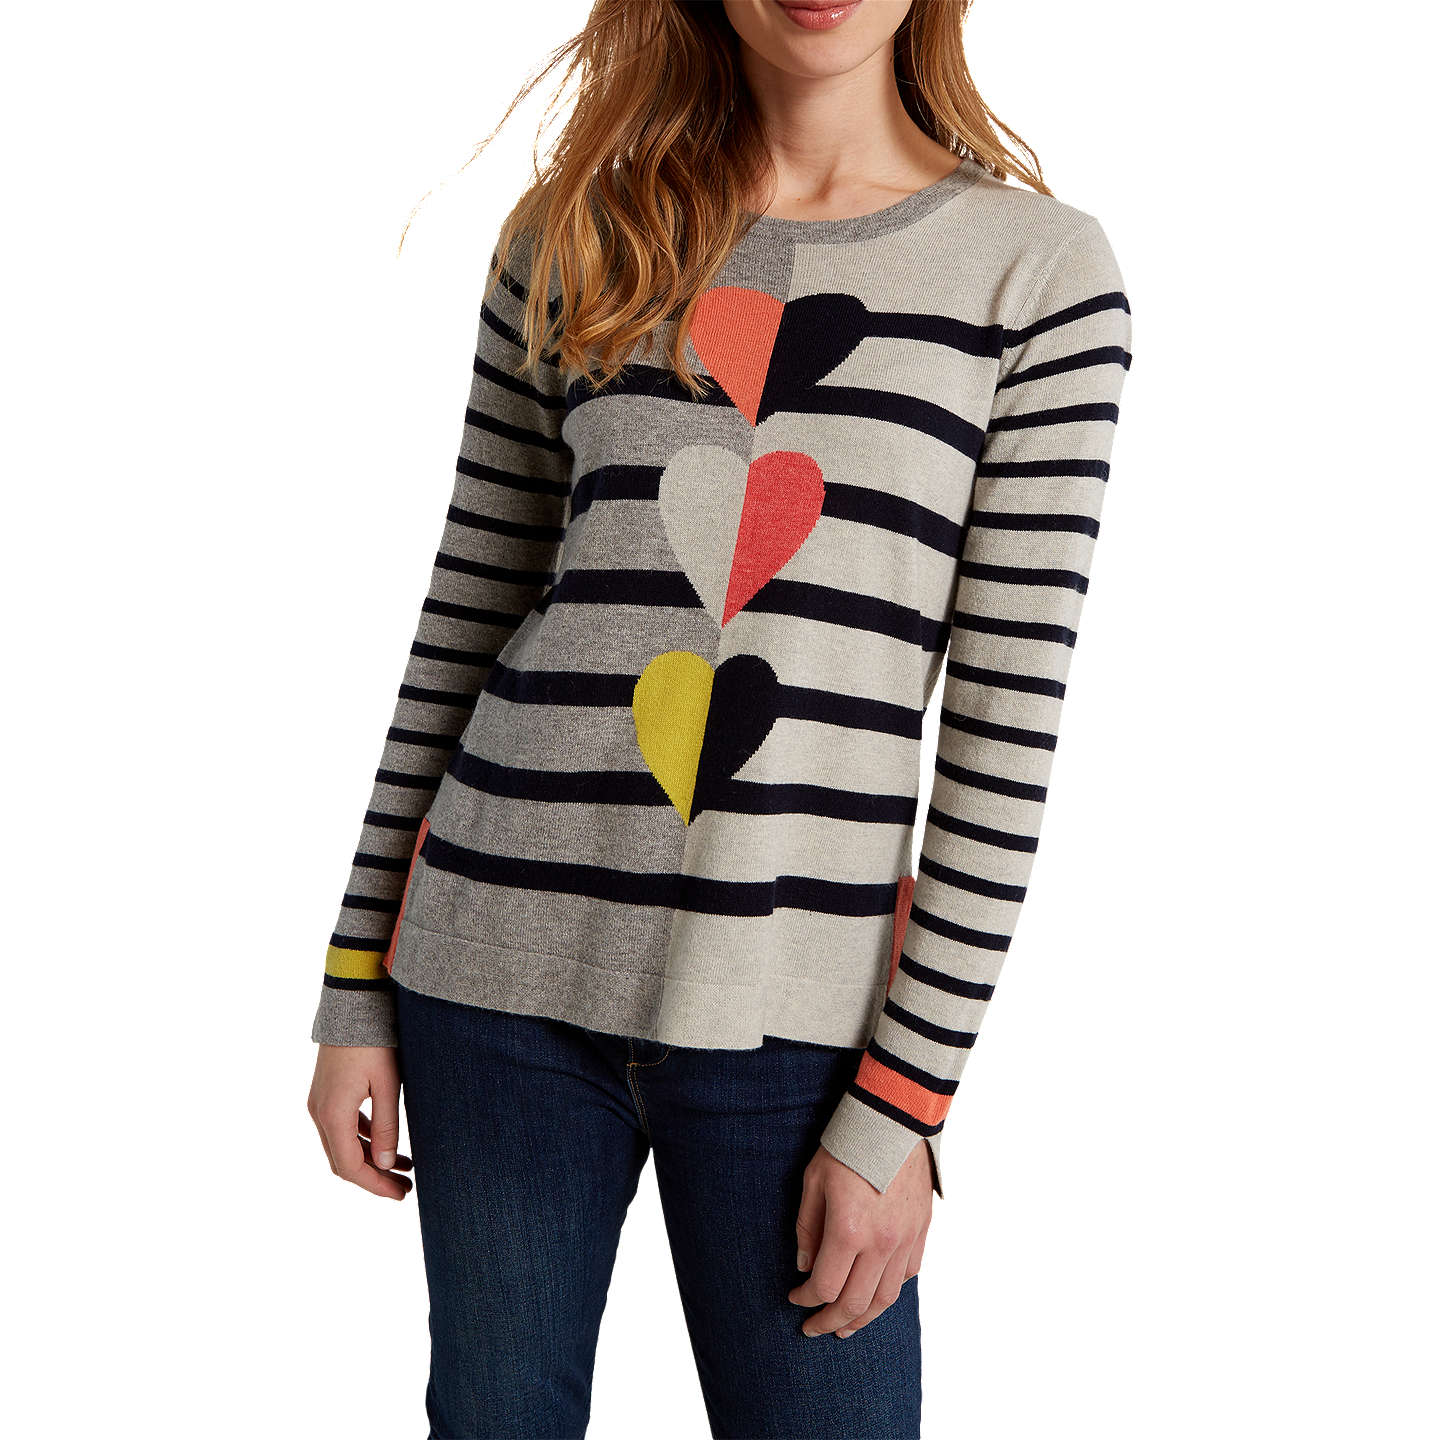 BuyWhite Stuff Trio Heart Stripe Jumper, Mutli/Grey, 6 Online at johnlewis.com